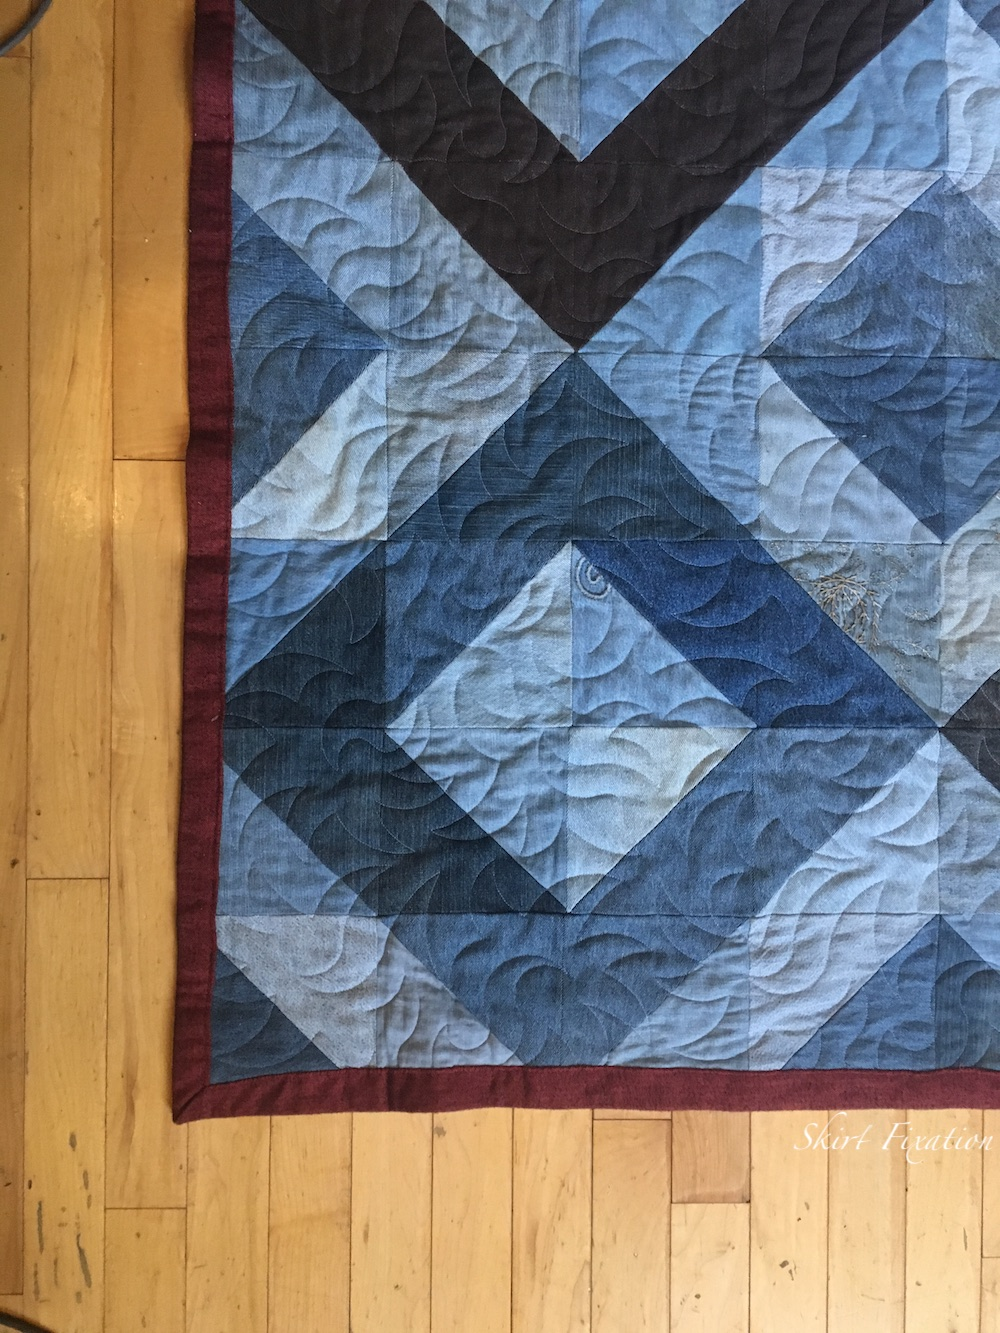 Denim quilt made from old jeans by Skirt Fixation